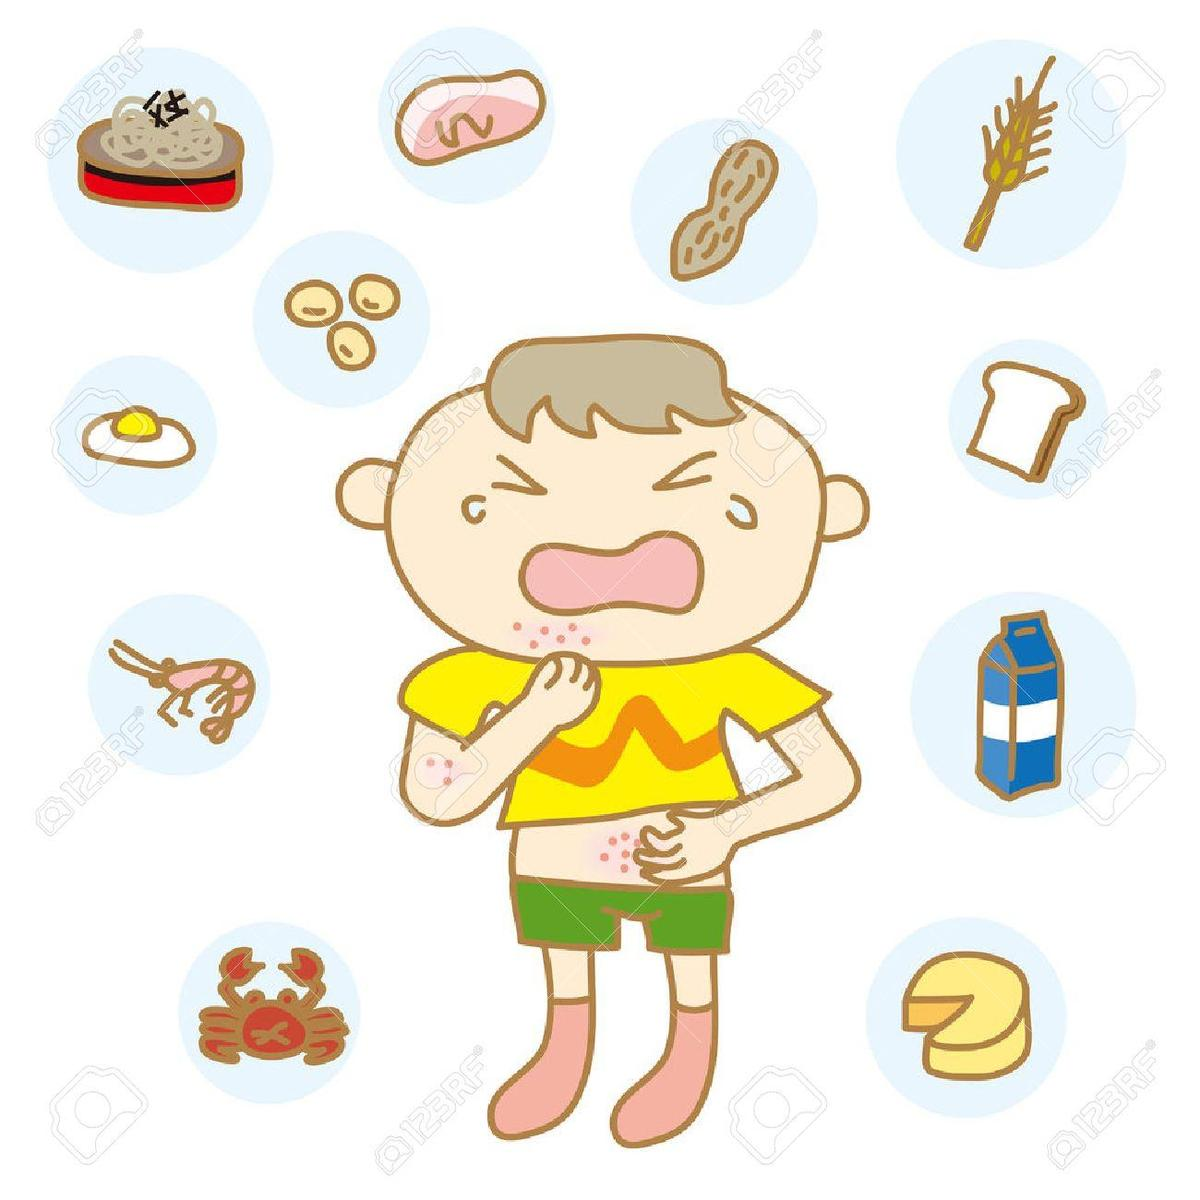 Image result for allergy kids clipart